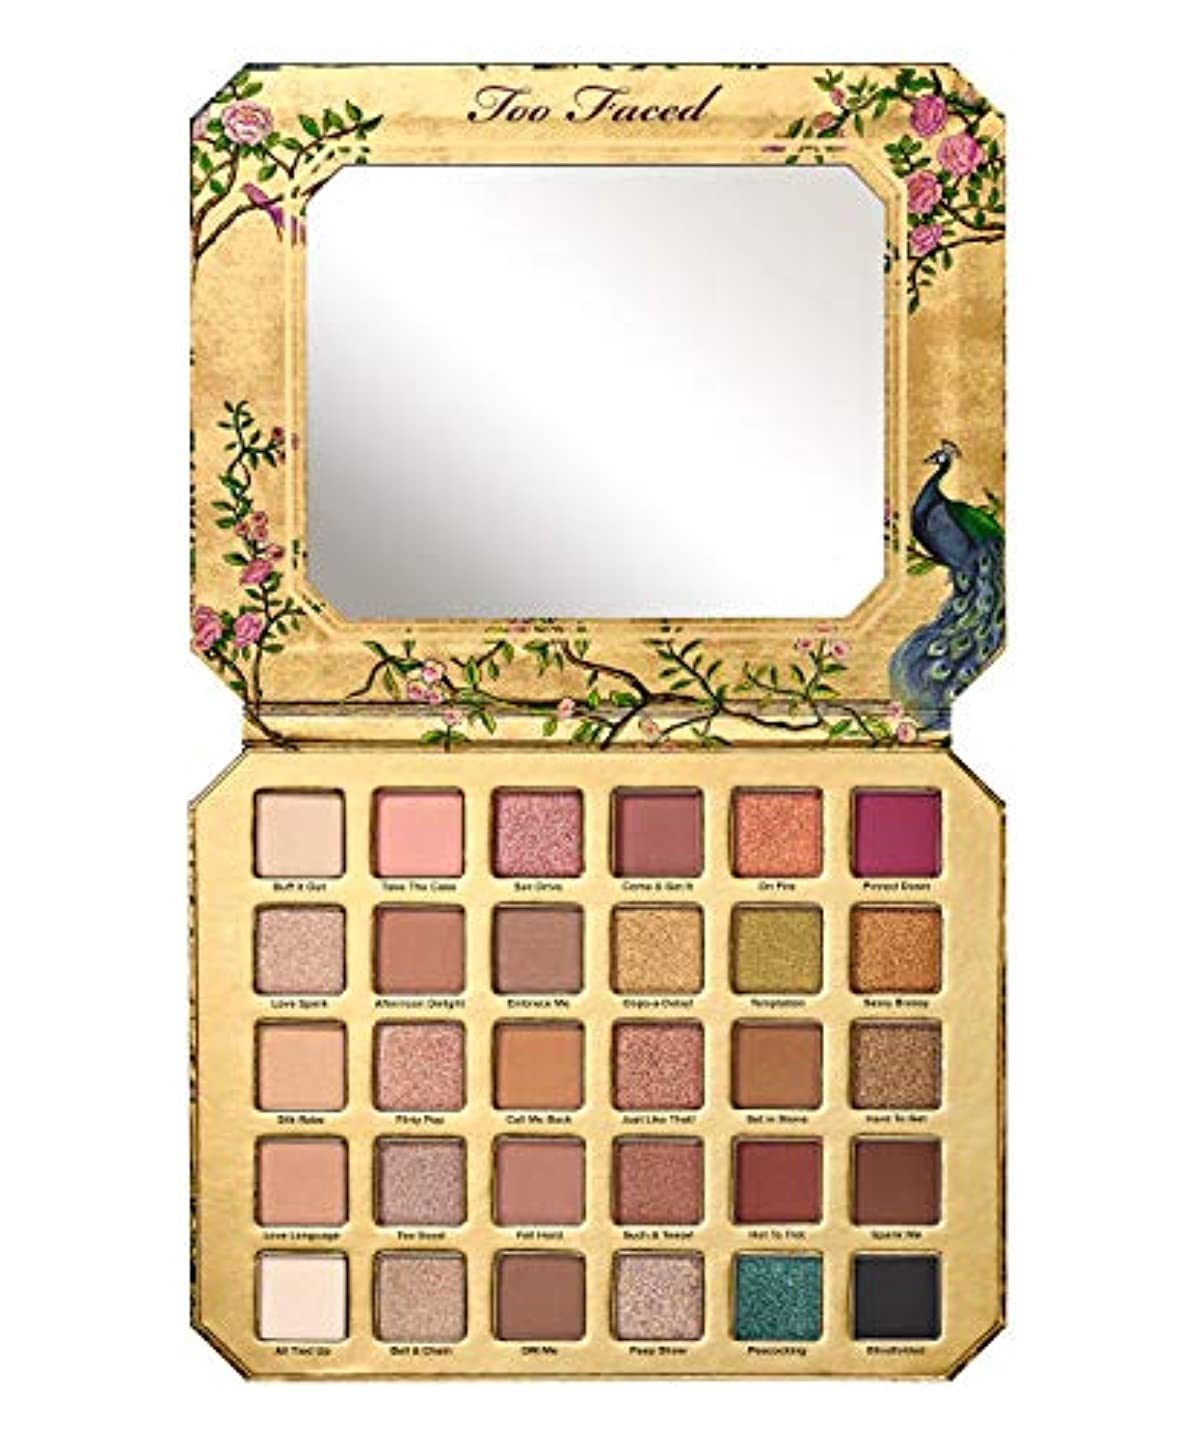 Too Faced Natural Lust Eye Shadow Palette+ FREE Sample